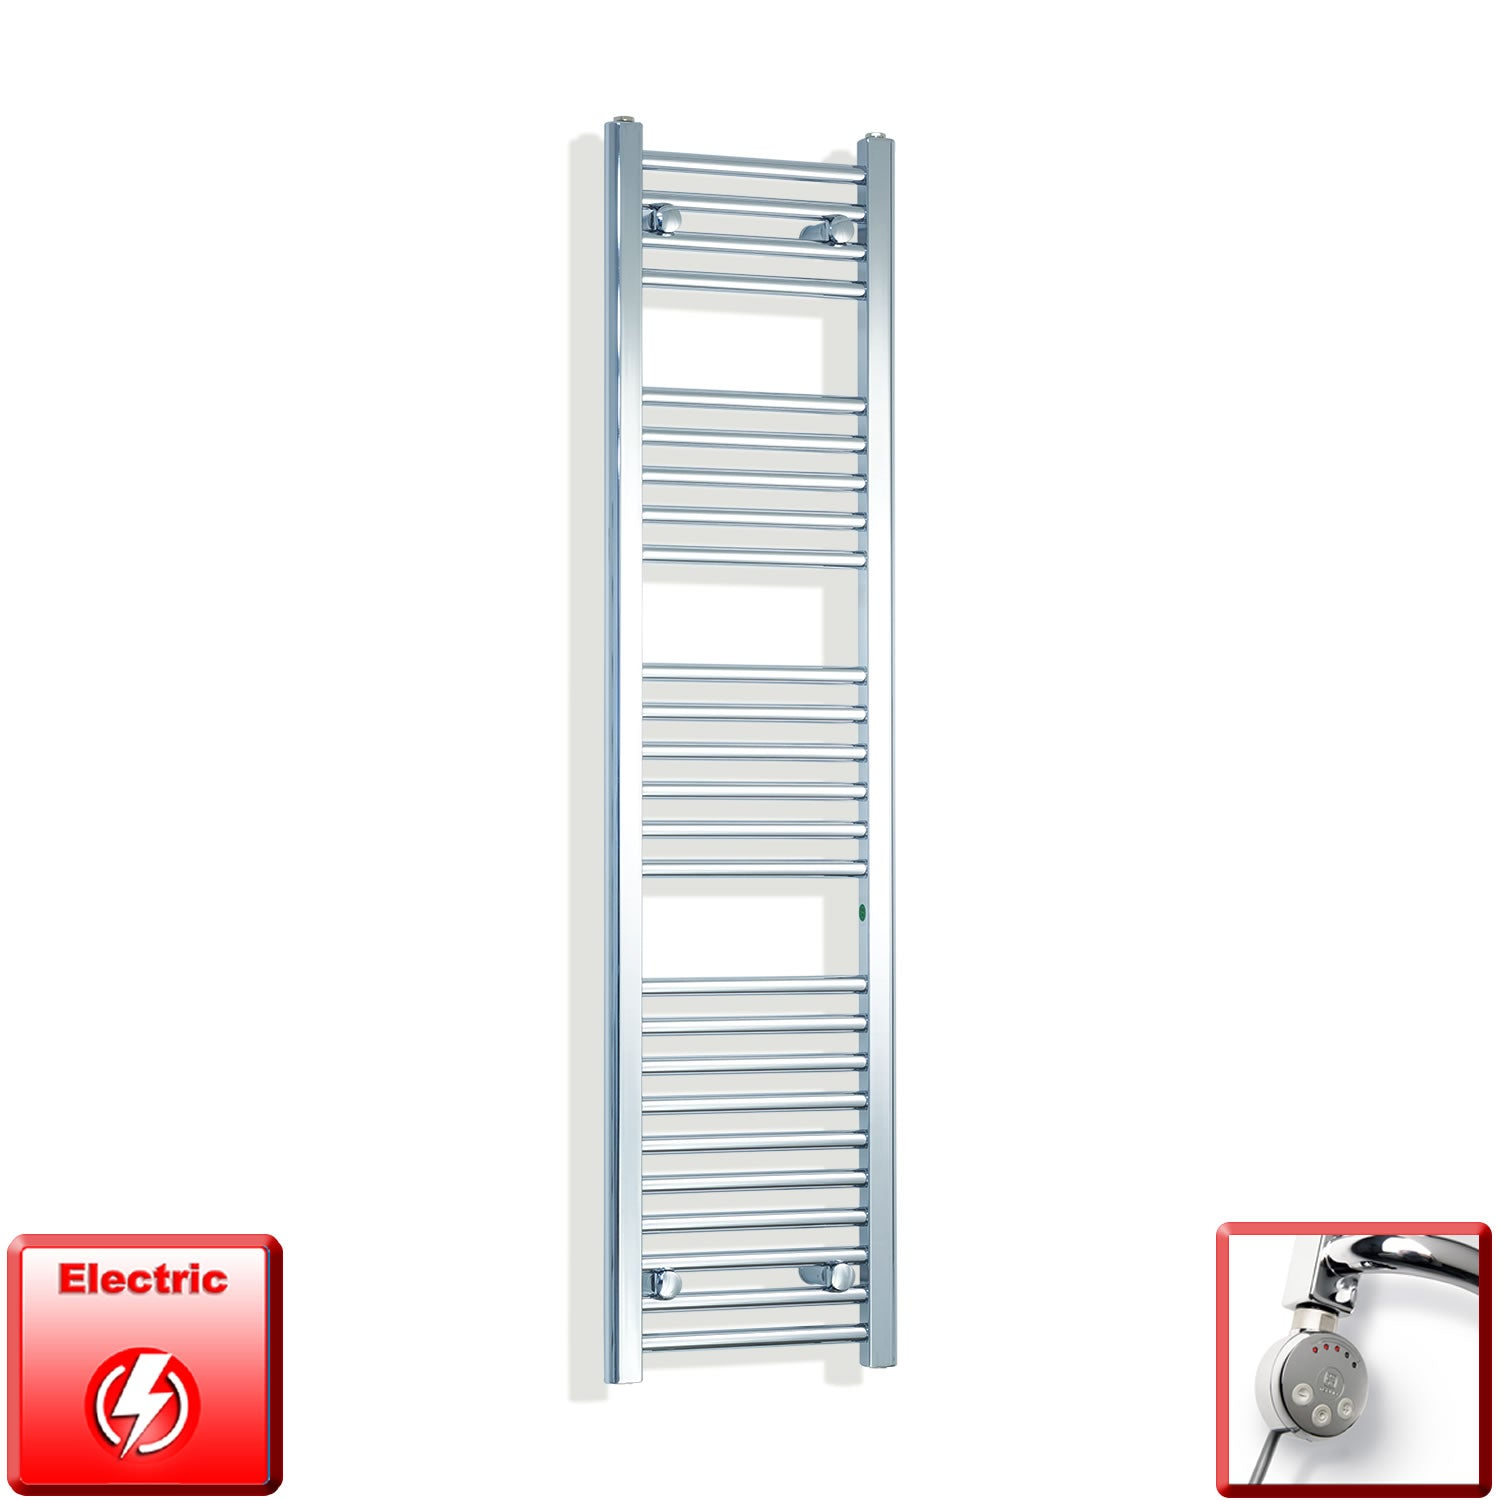 1400mm High 300mm Wide Pre-Filled Electric Heated Towel Rail Radiator Straight Chrome